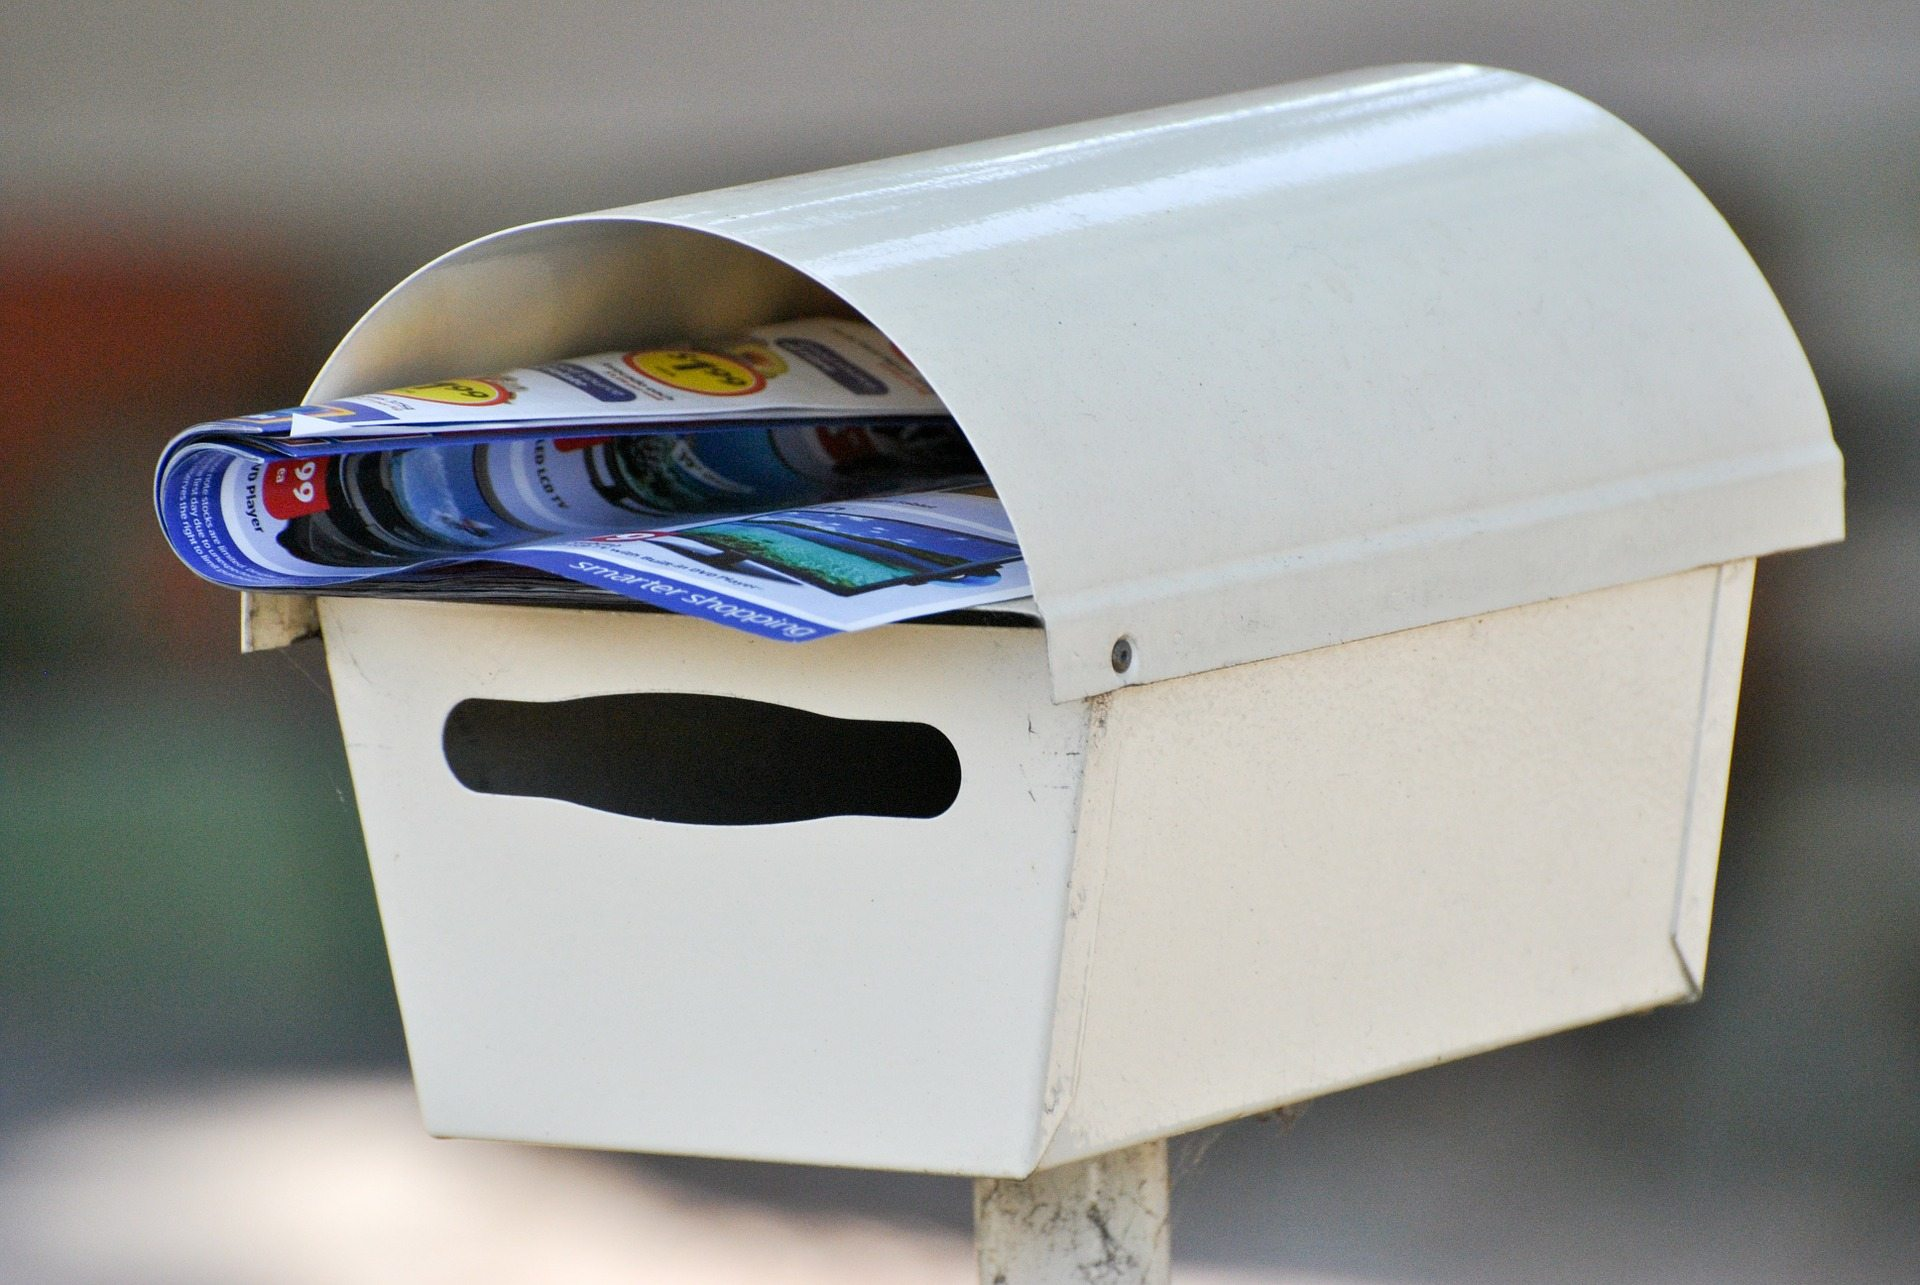 junk mail stinking thinking Pixabay letterbox-211428_1920